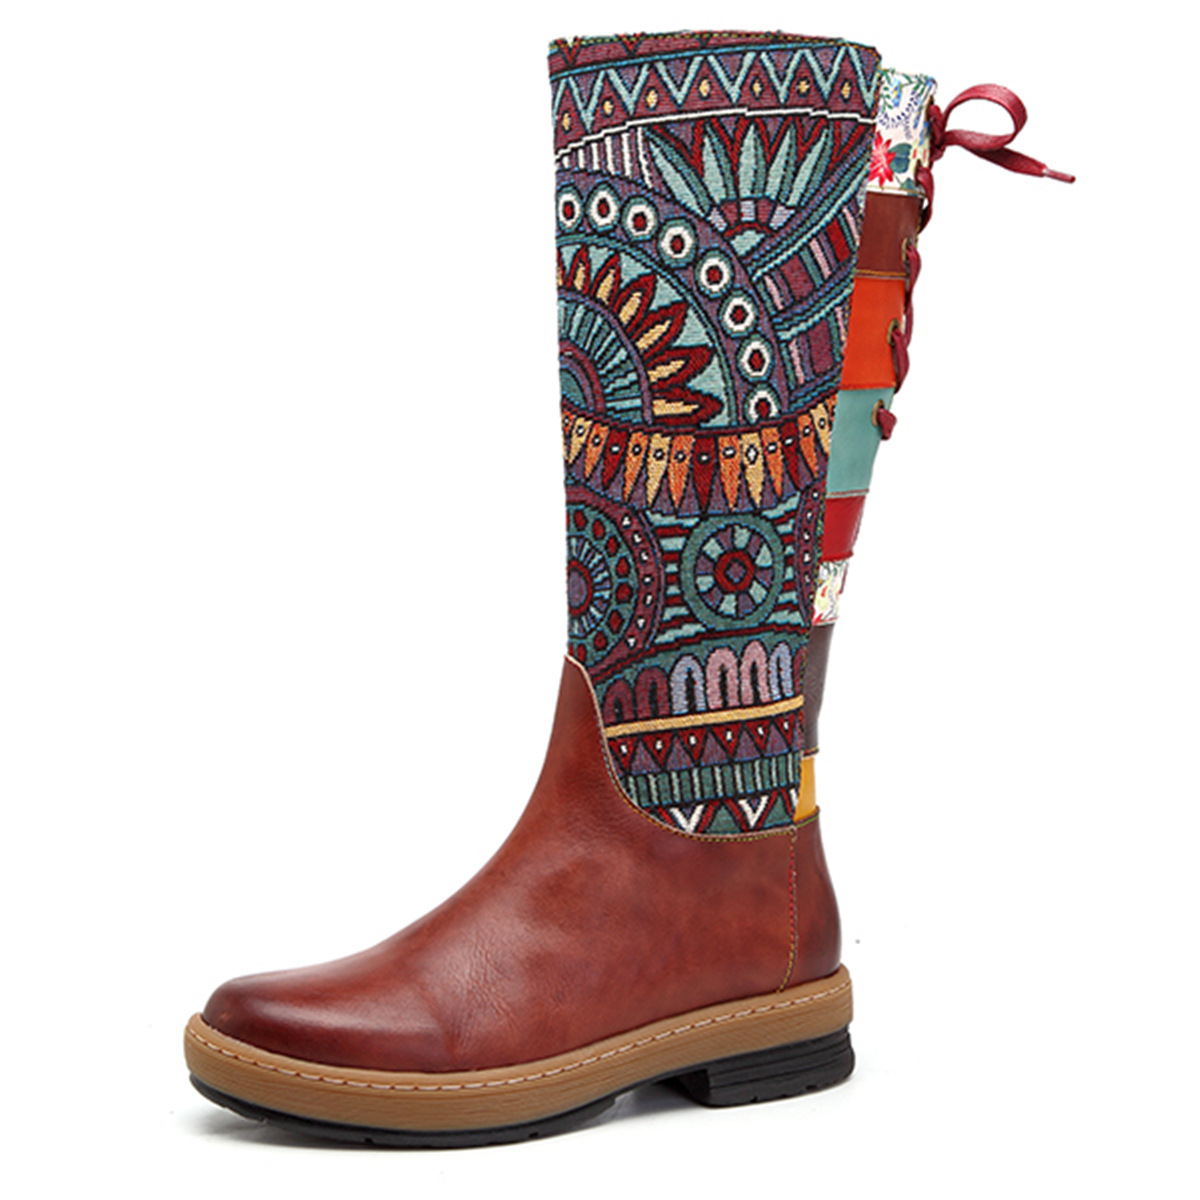 SOCOFY Women's Handmade Boho Leather Gum-soled Bohemian Calf Boots: Tribal-pattern Jacquard Fabric Splicing